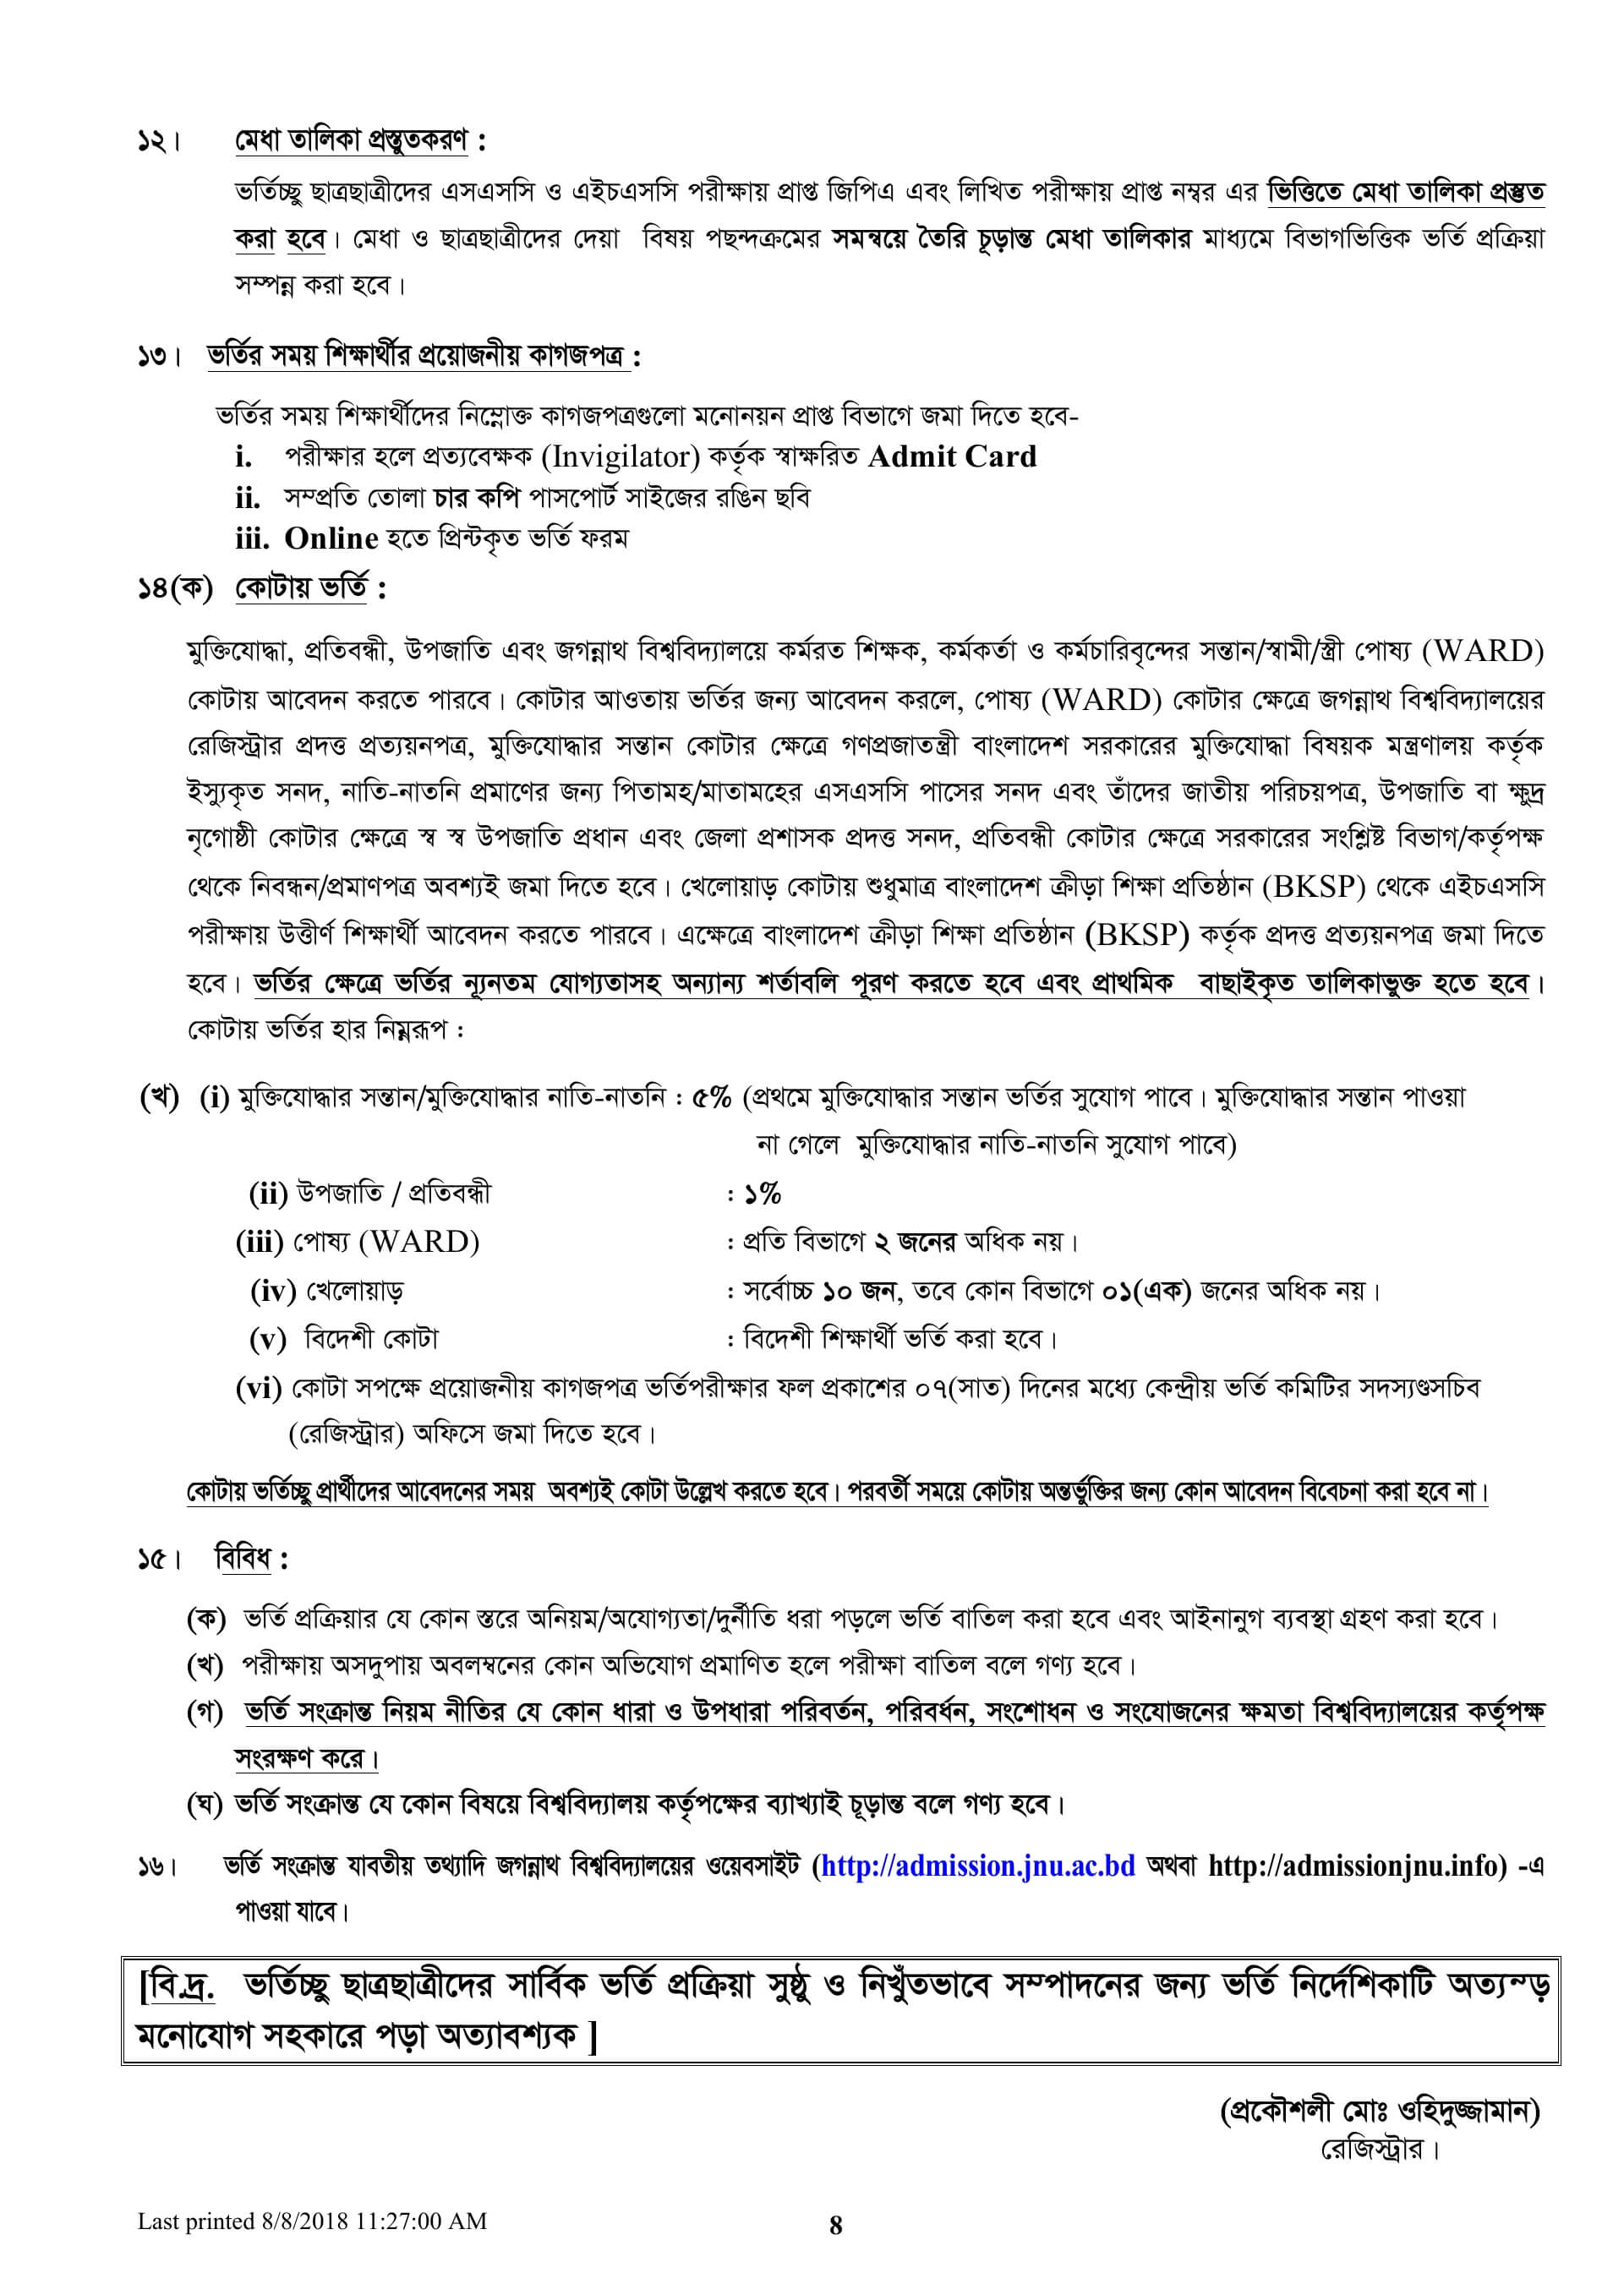 Jagannath University Admission Guideline-7